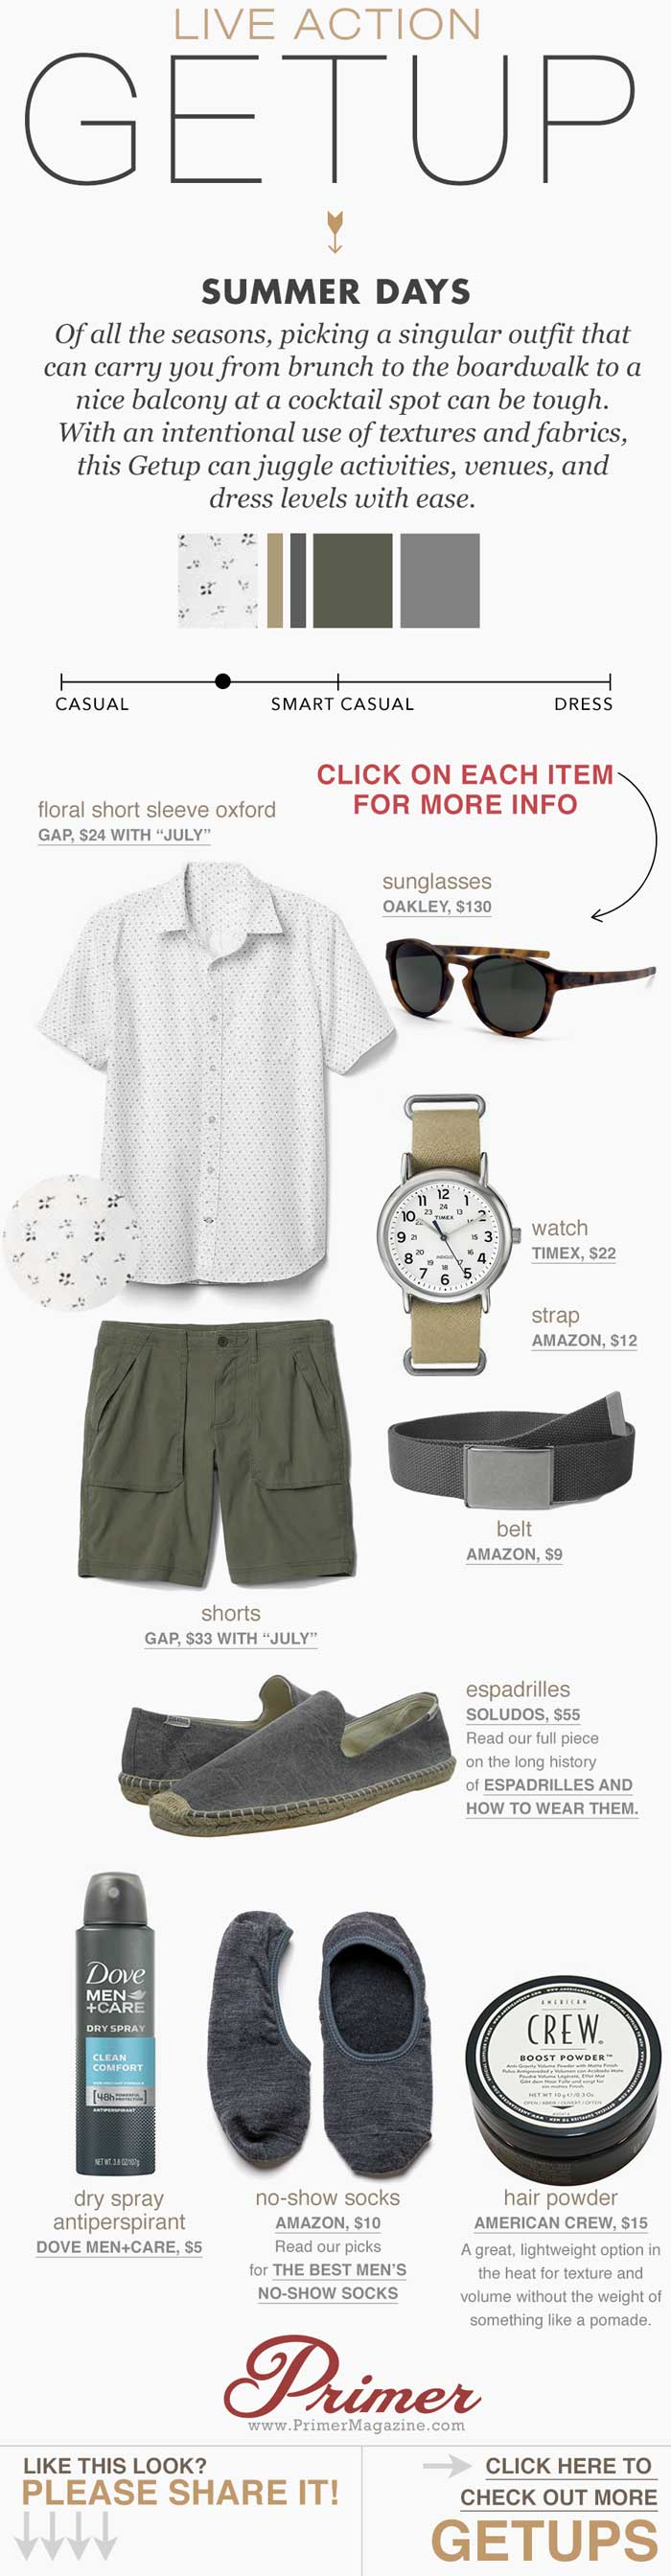 Men summer shorts outfit inspiration floral short sleeve oxford green hiking shorts gray espadrilles - The Getup by Primer